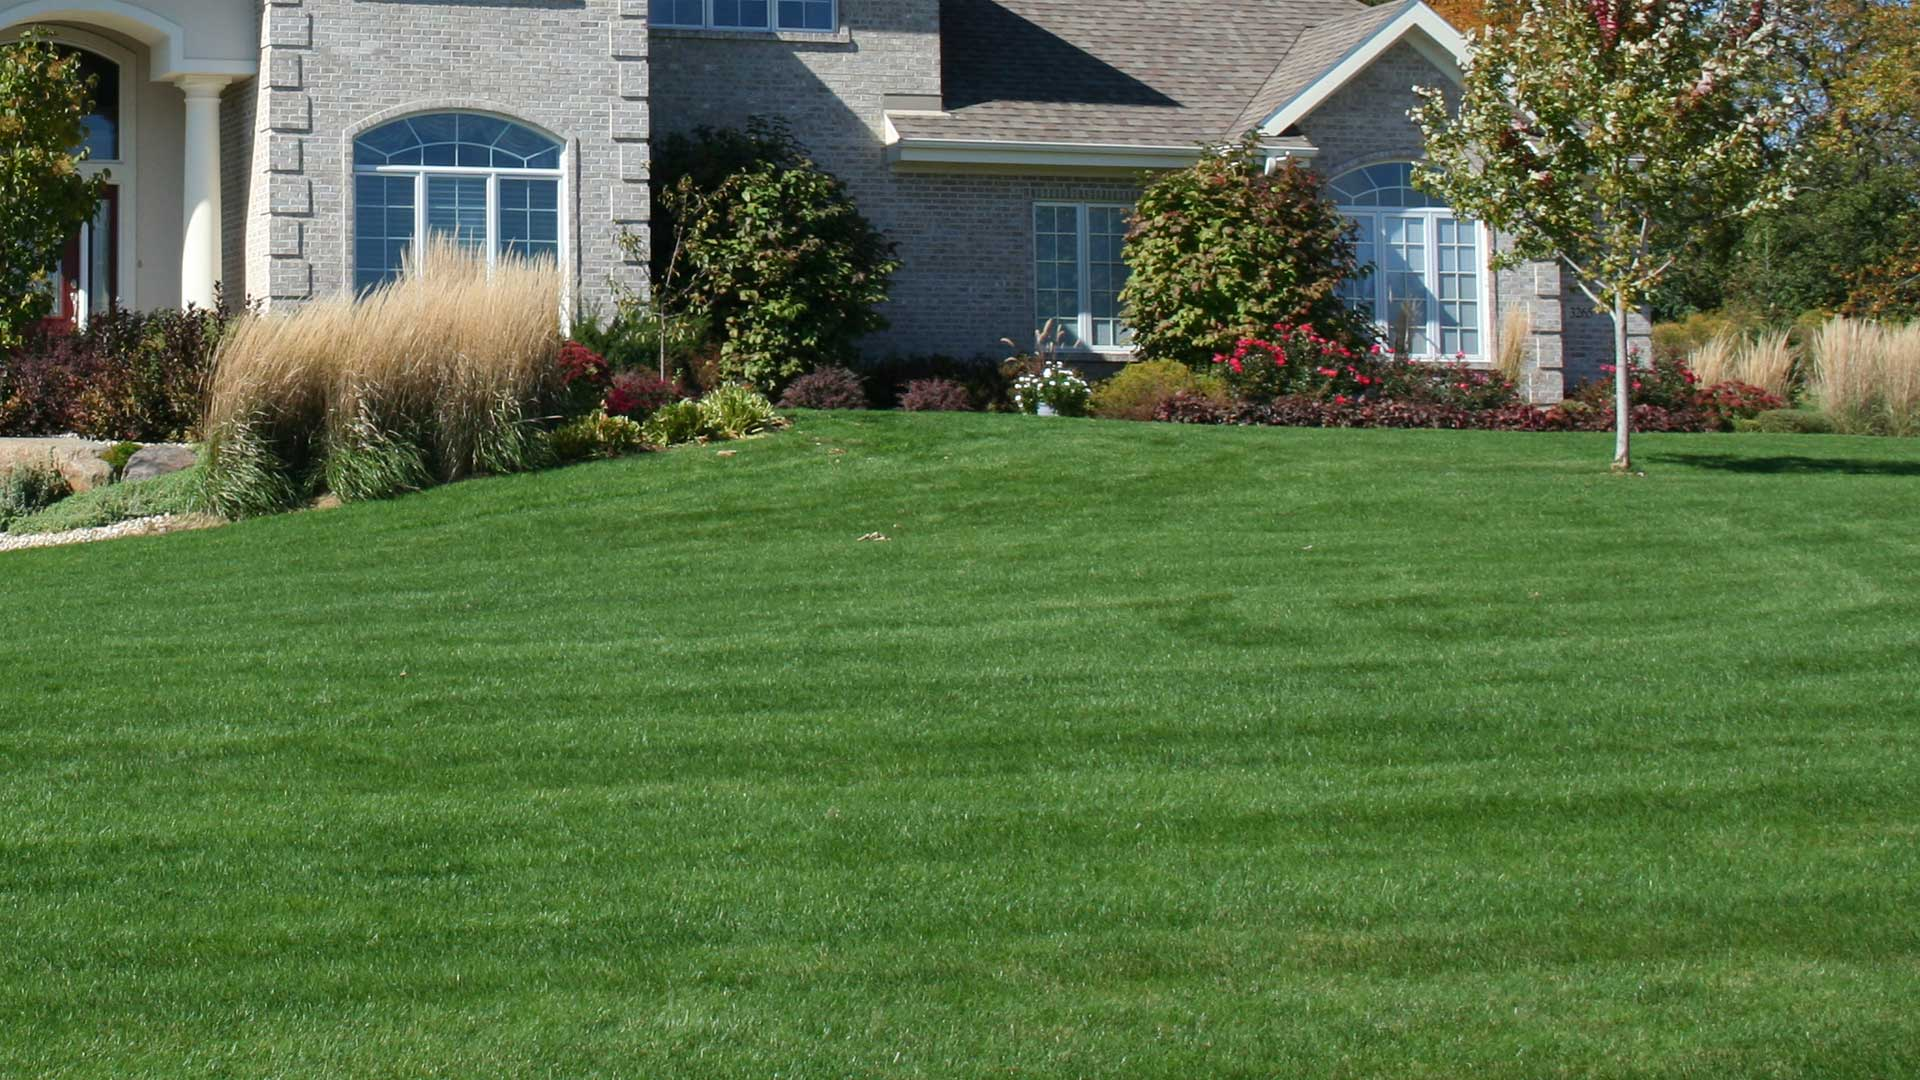 Lawn care services at a residential property in Berkeley Heights, NJ.